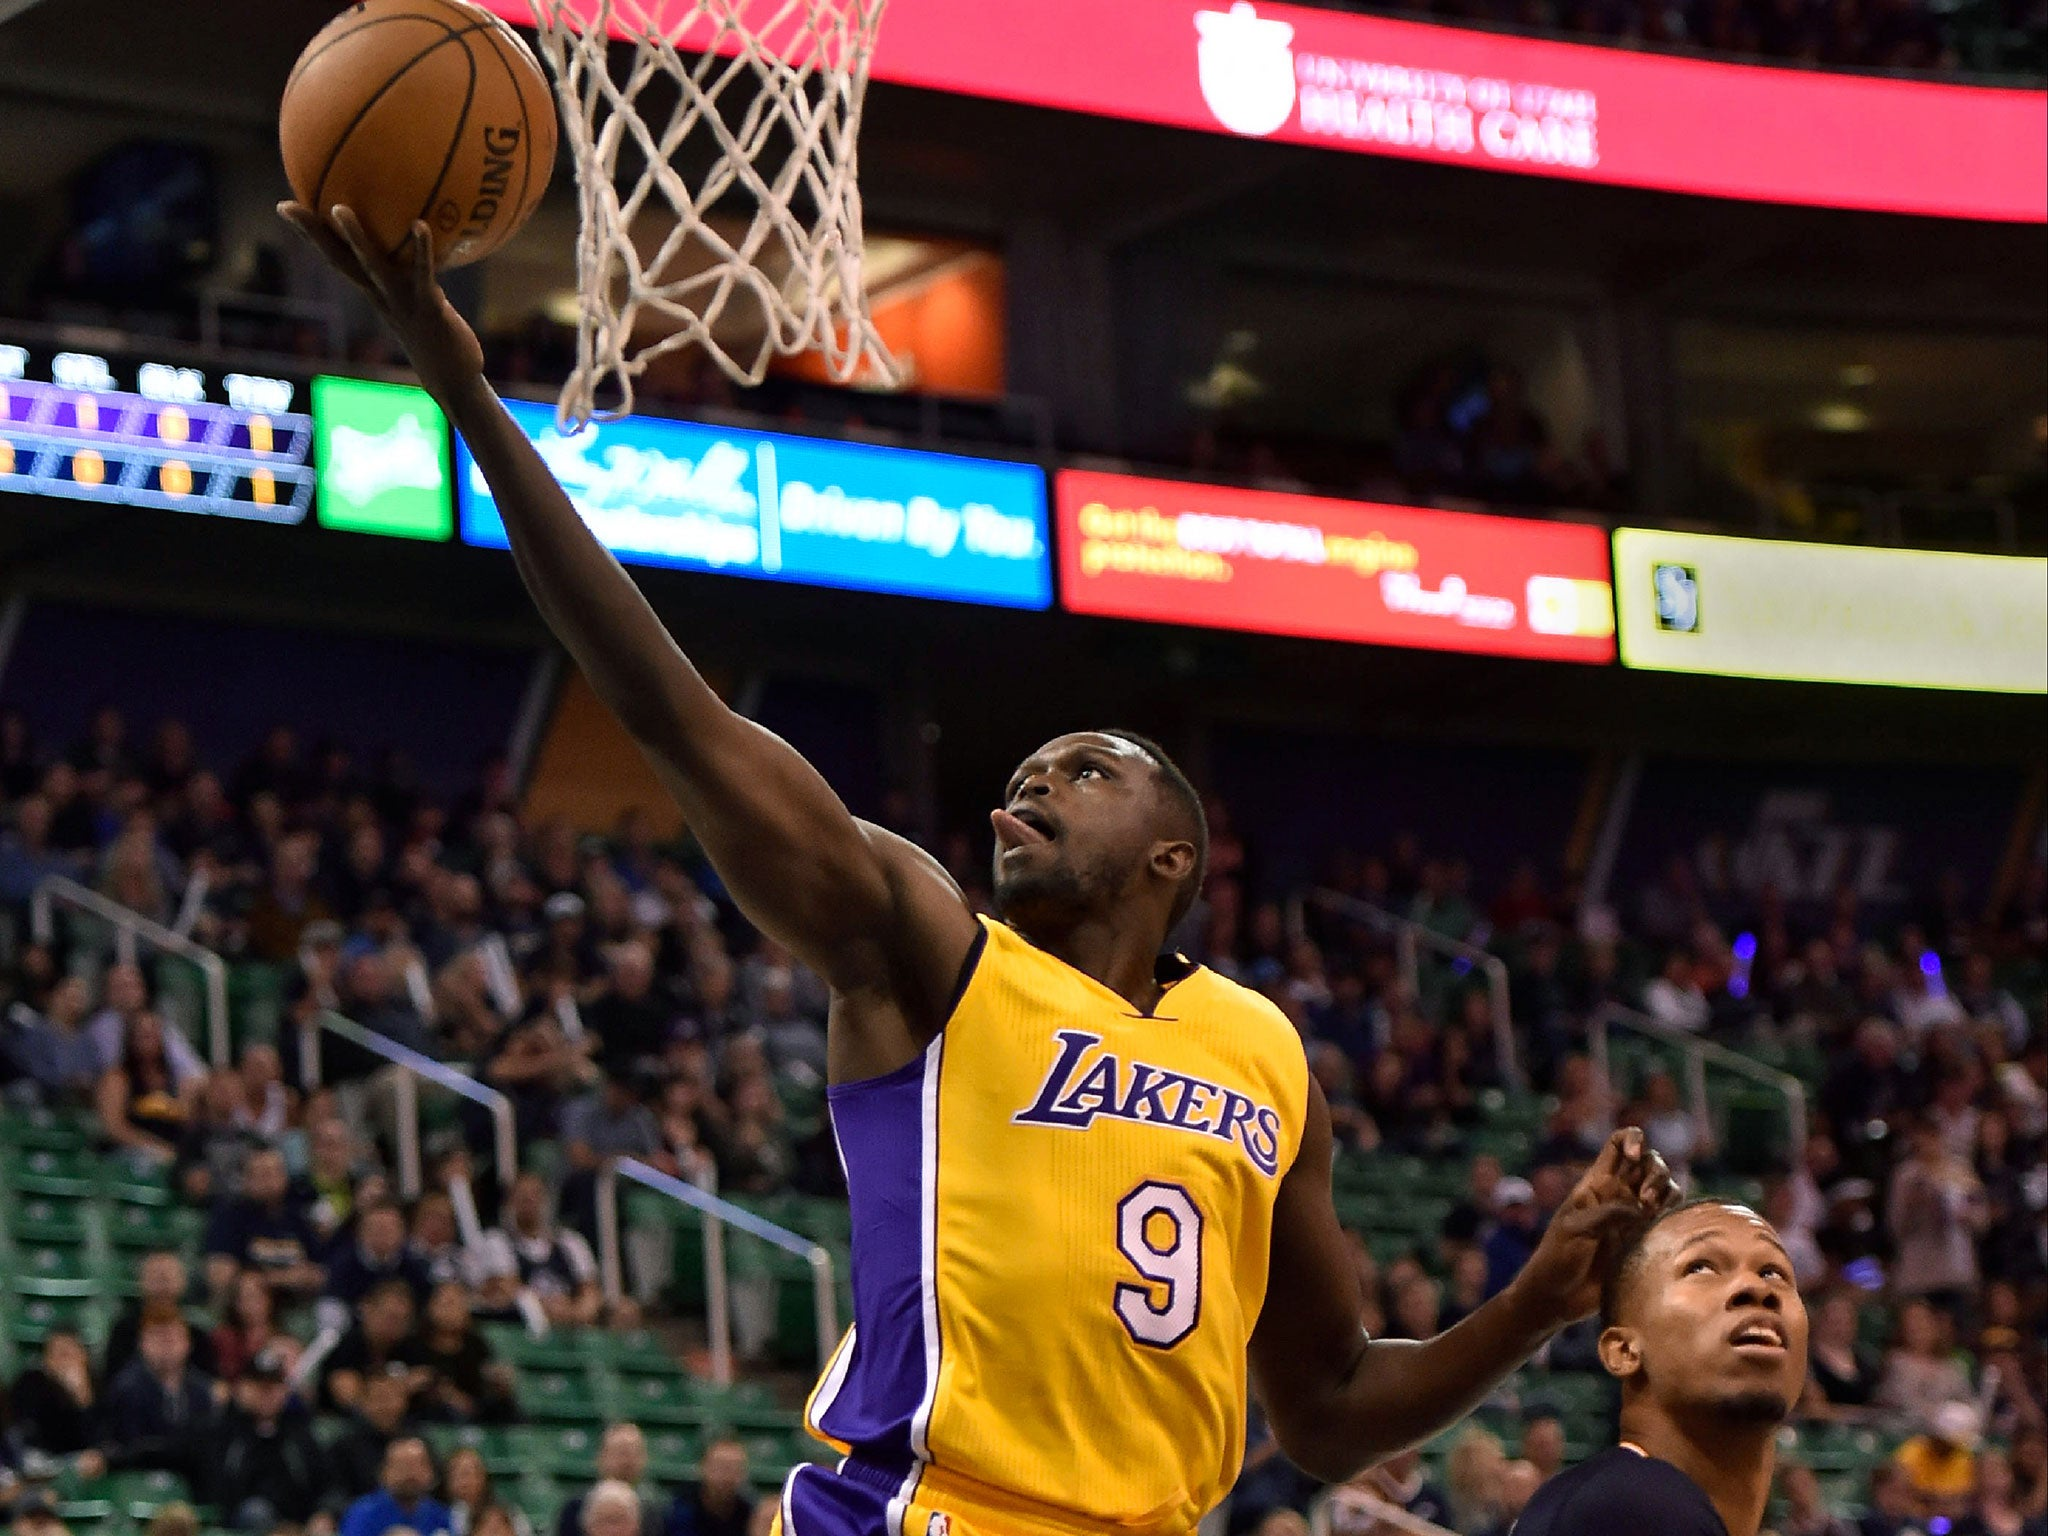 British NBA star Luol Deng laughs off suggestions of Crystal